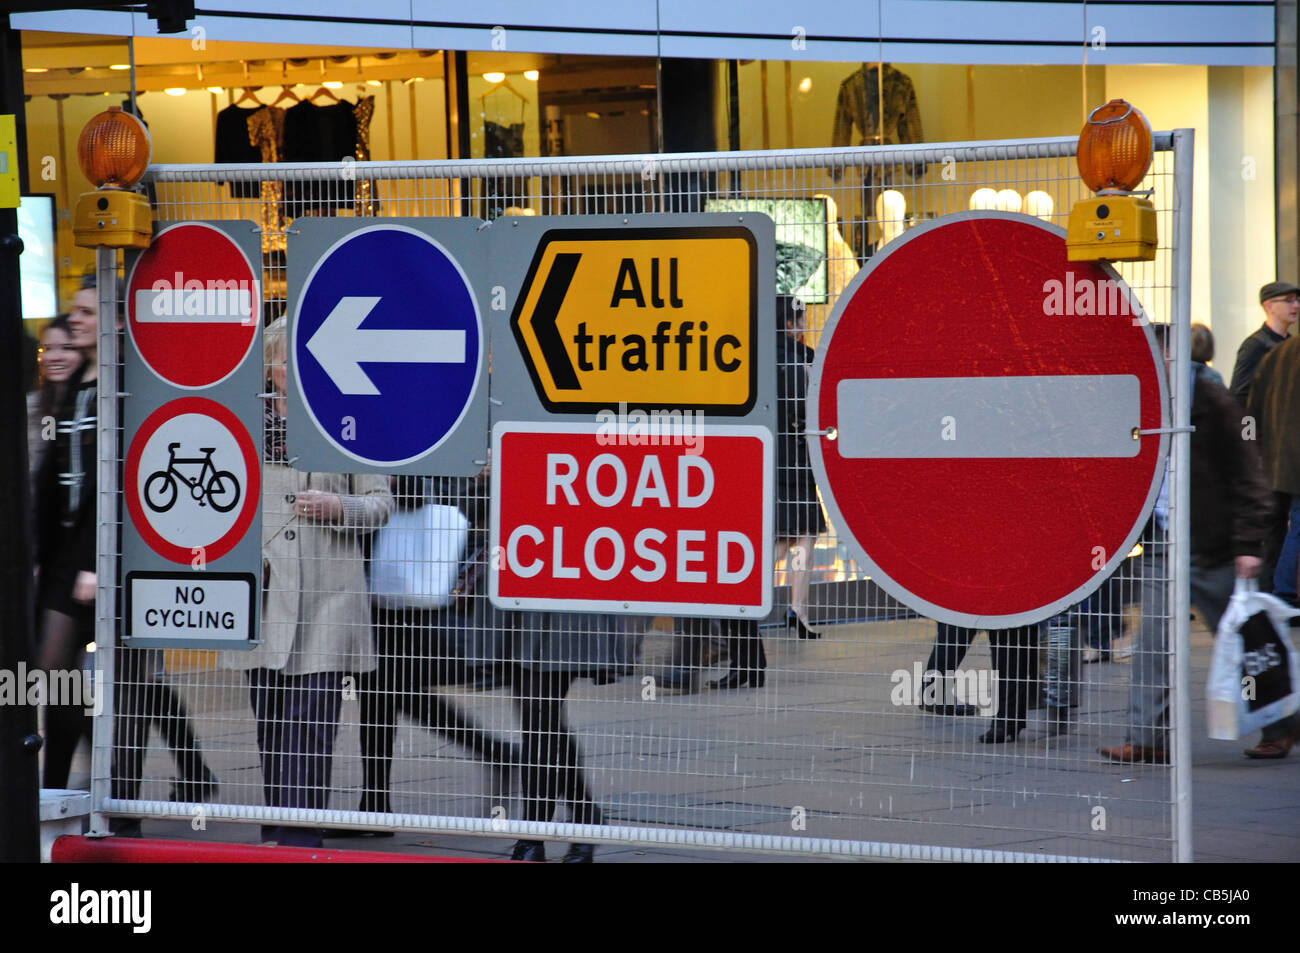 Road closed sign on Oxford Street, City of Westminster, London, Greater London, England, United Kingdom - Stock Image